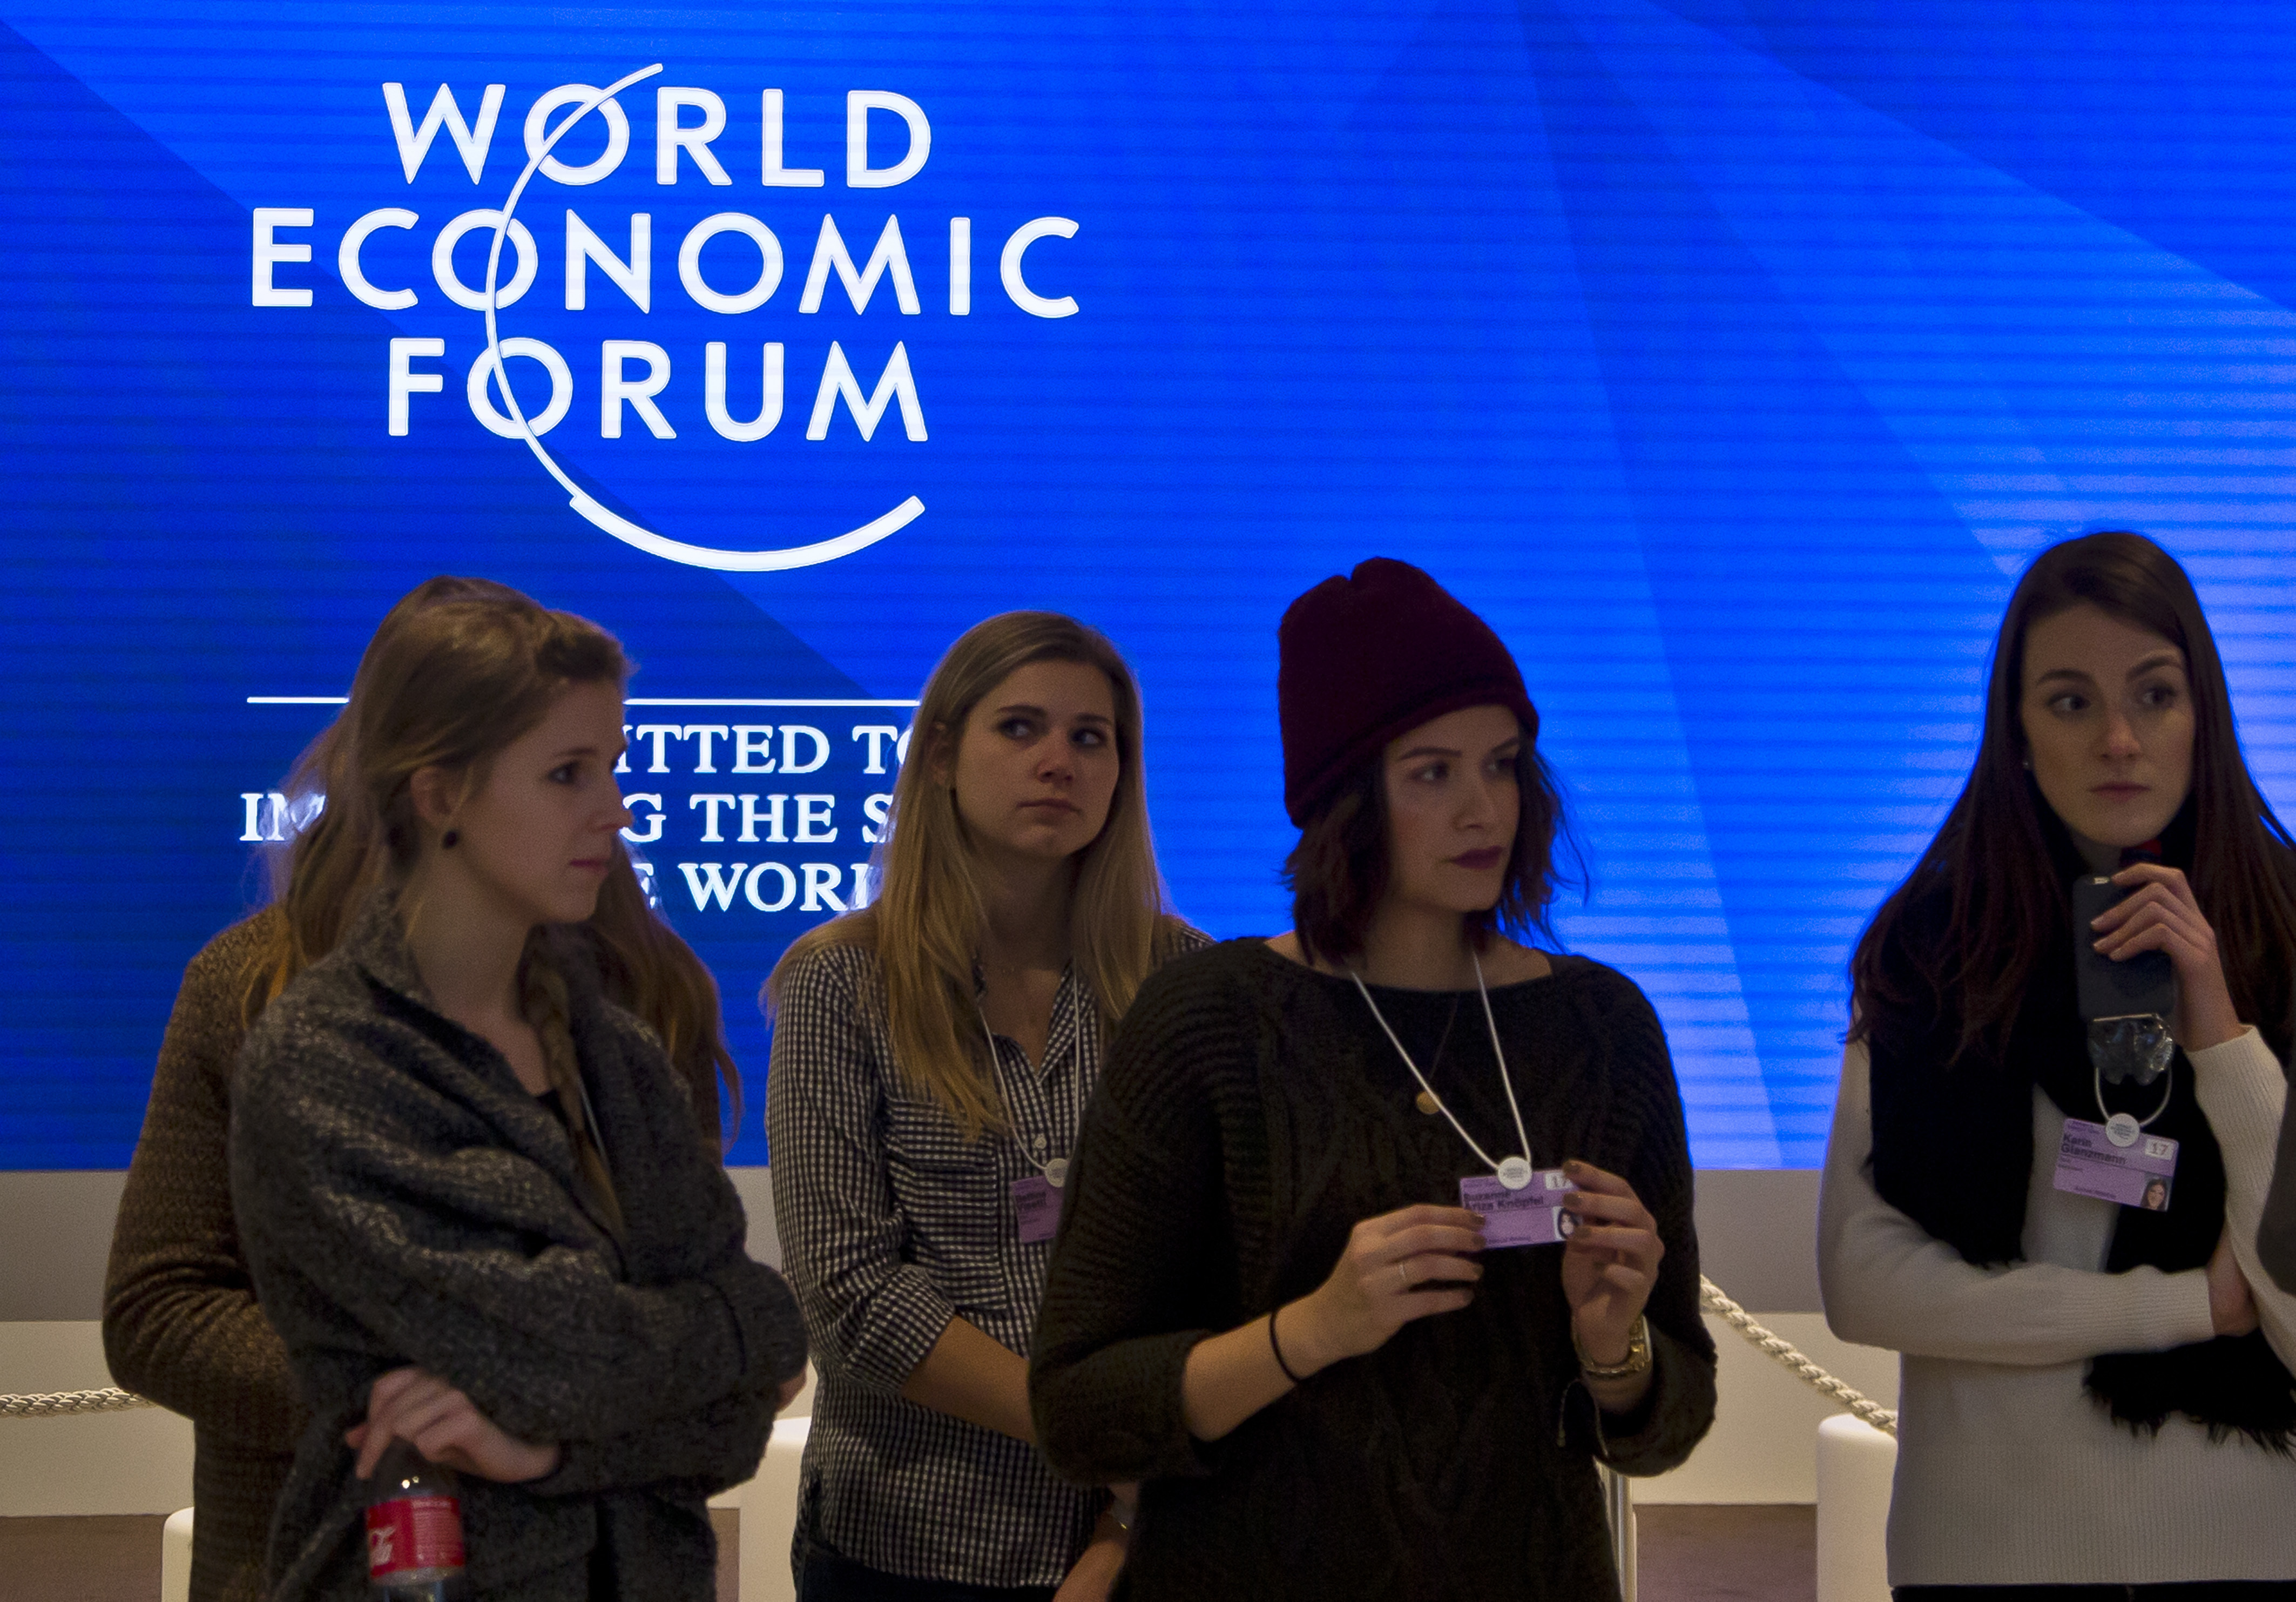 Staff members are briefed at the congress center where the annual meeting, World Economic Forum, will take place in Davos, Switzerland on Jan. 15, 2017. (AP Photo/Michel Euler)